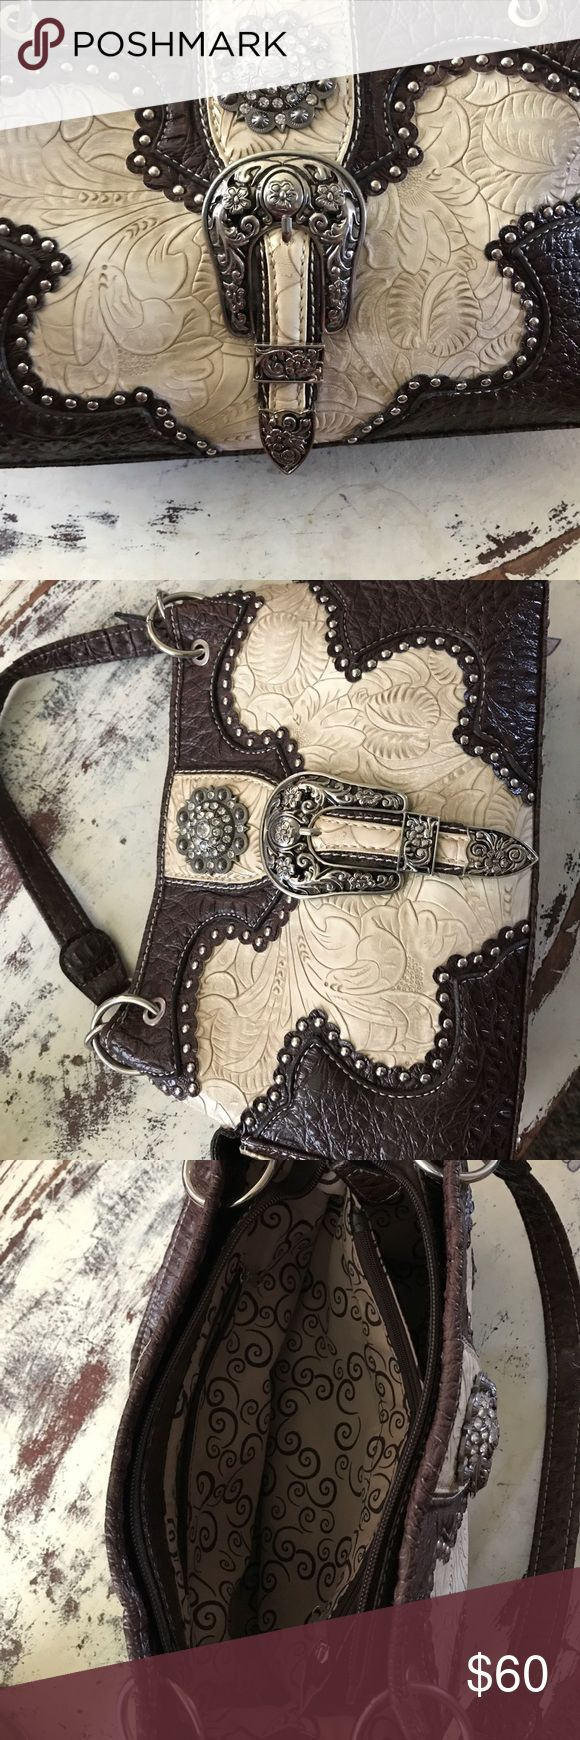 Fabulous buckle bag Western large buckle purse Bags Totes